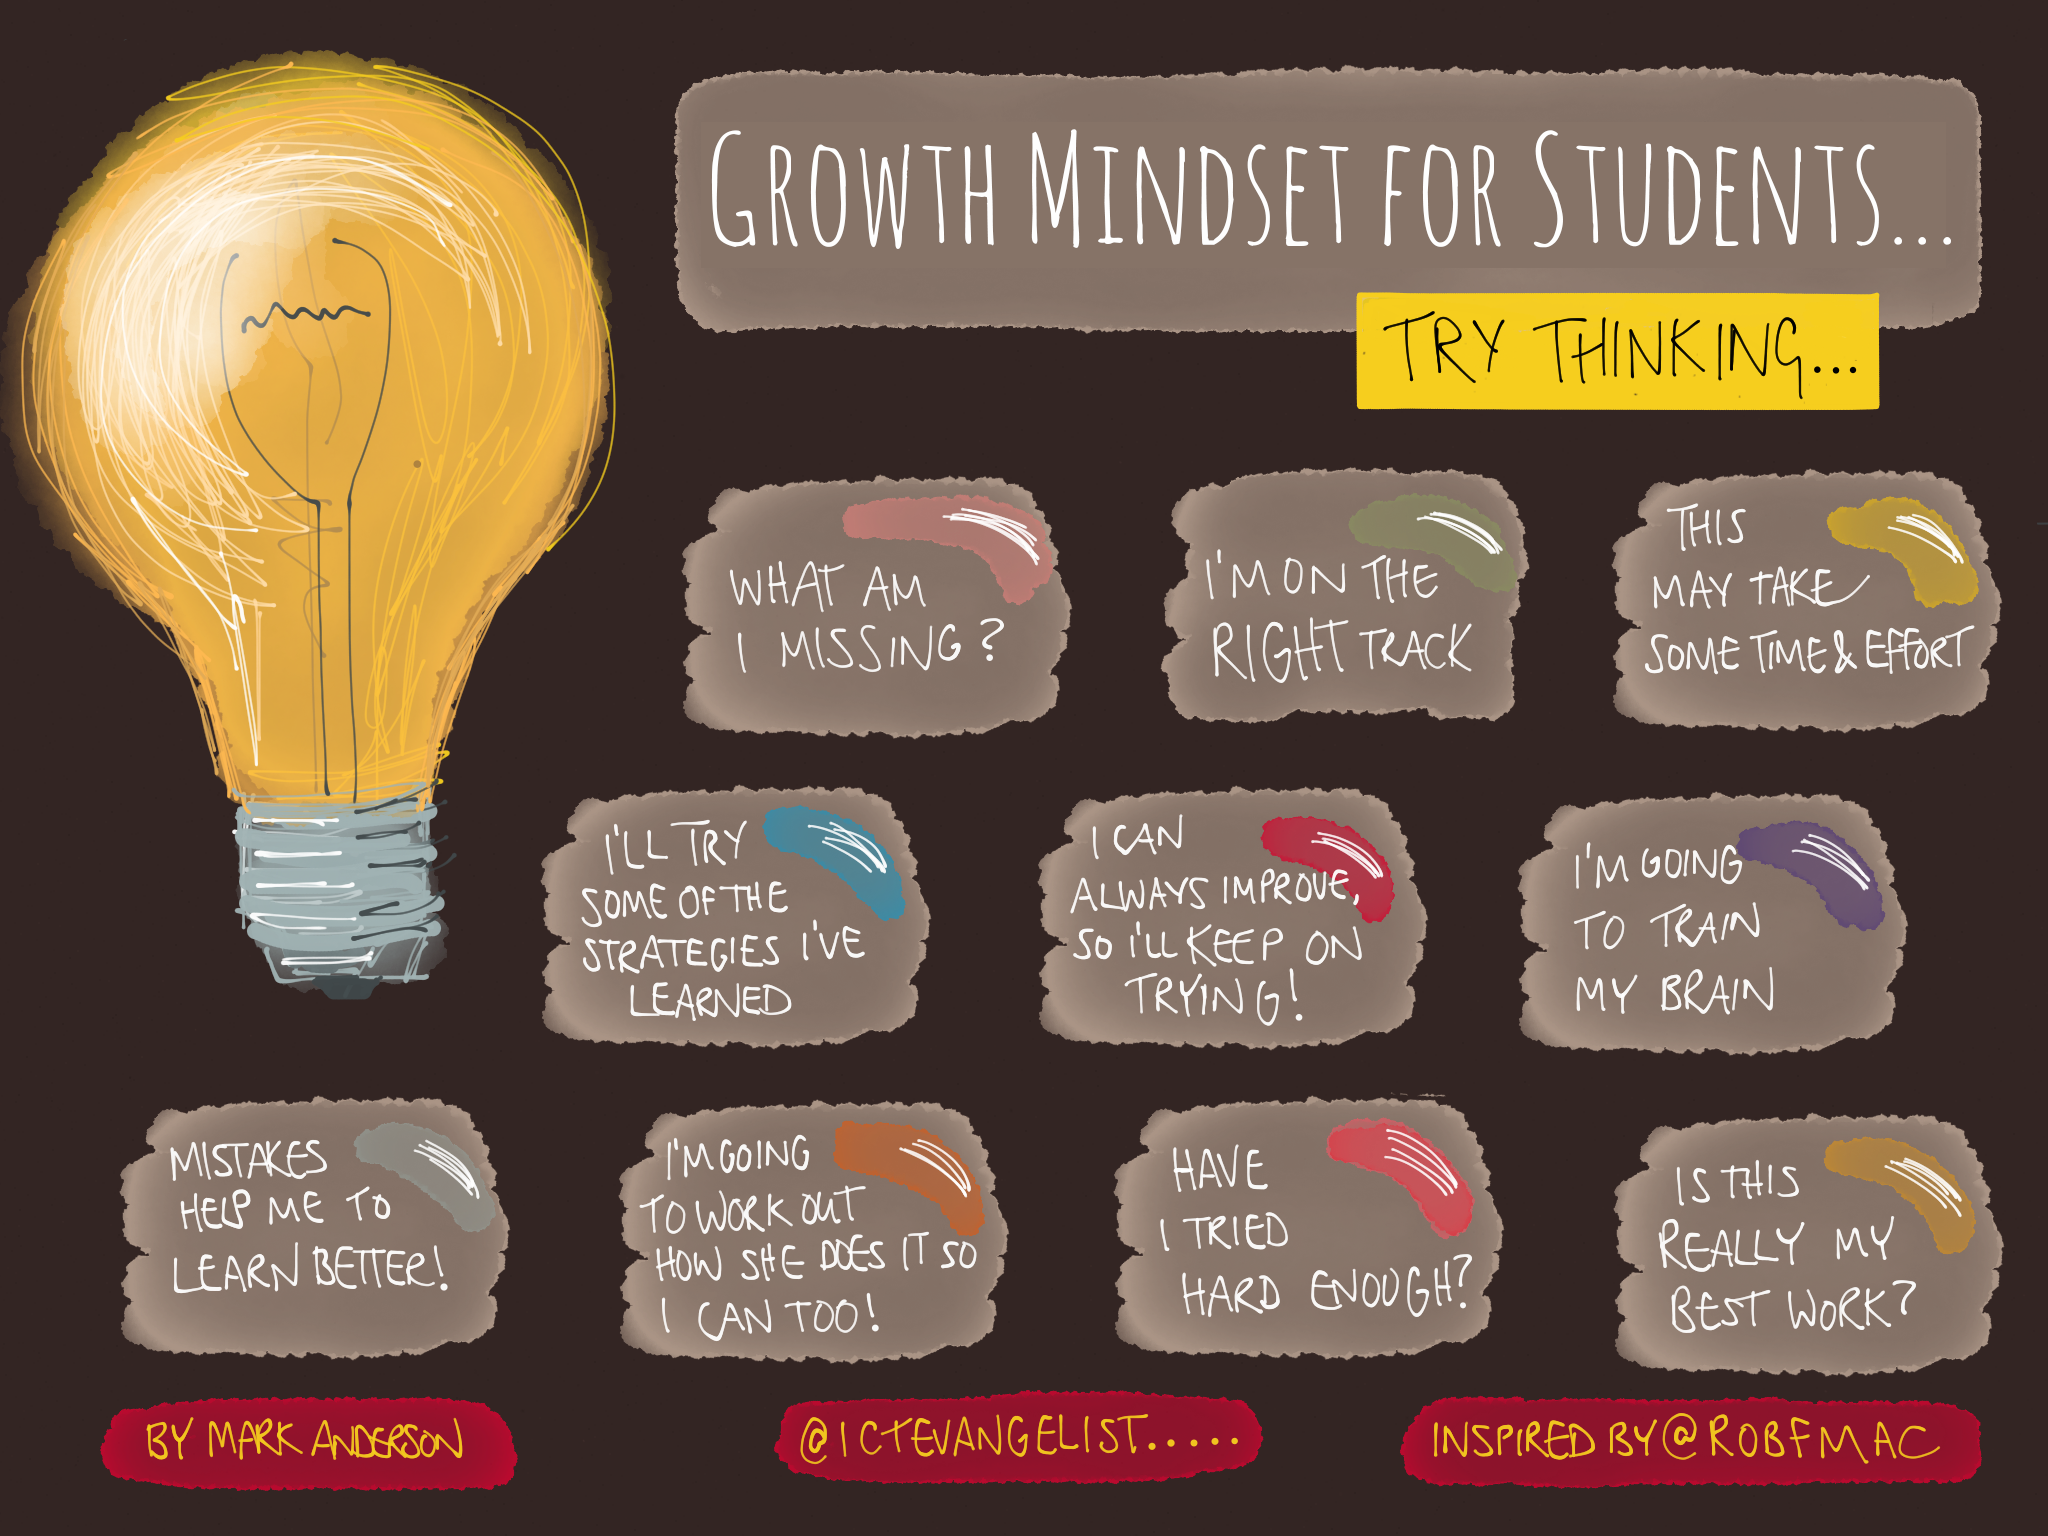 Growth mindset prompts for students | Growth Mindset | Pinterest ...